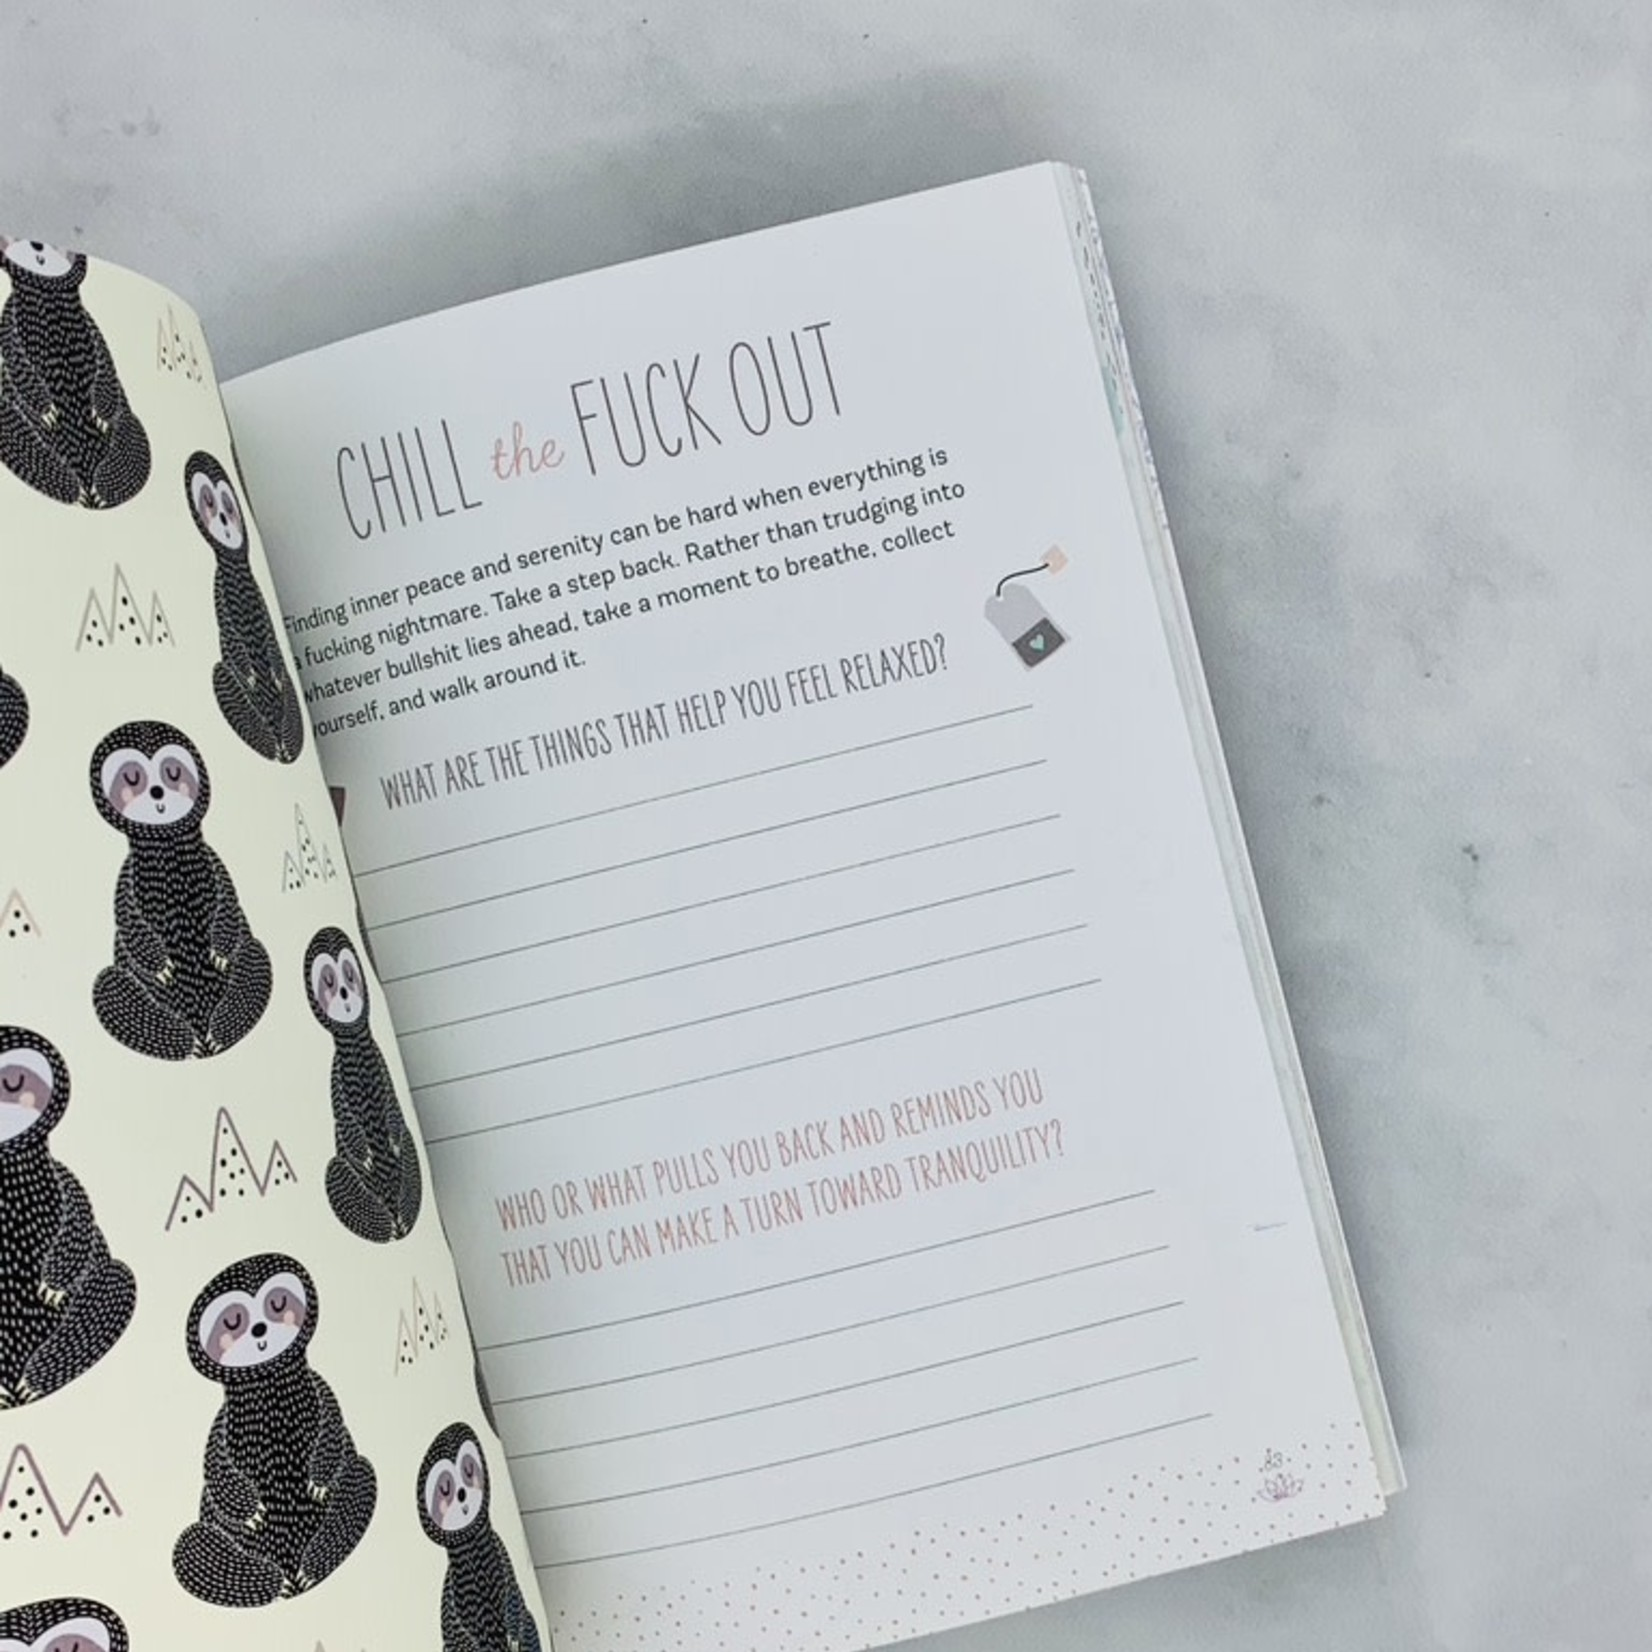 Zen as F*ck at Work A Journal for Banishing the Bullsh*t and Finding Calm in the Chaos